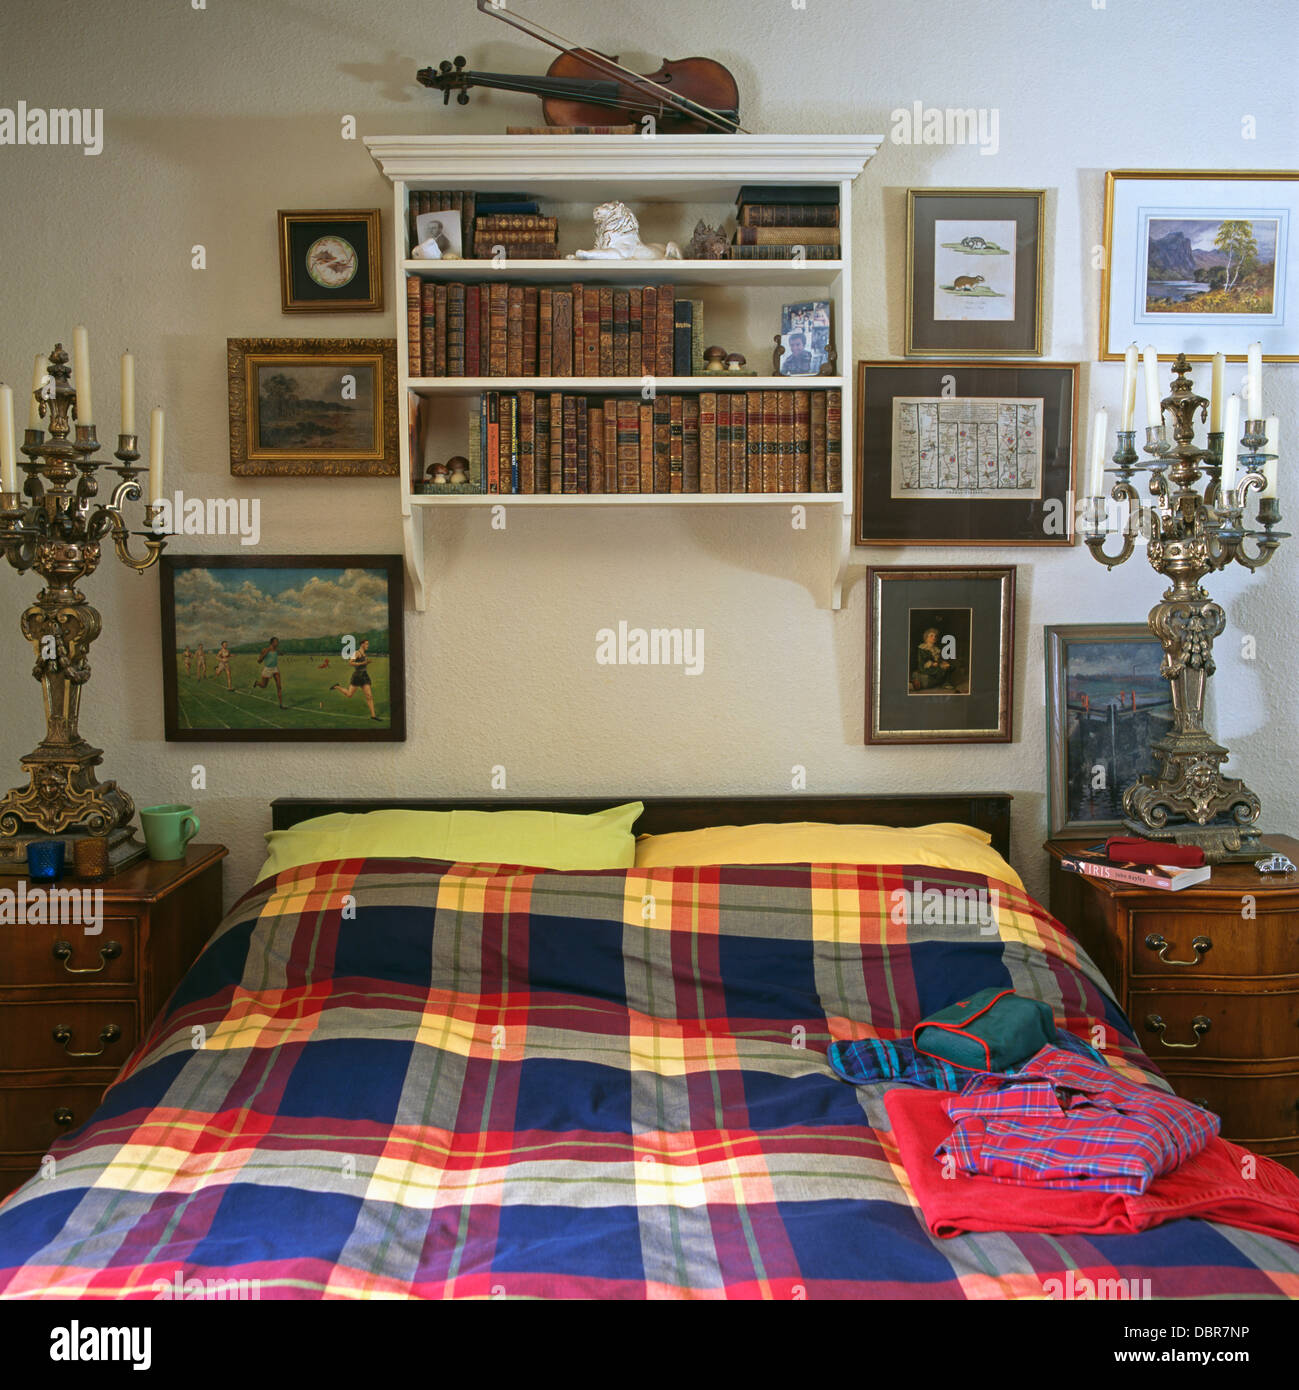 Old books on shelves above bed with colorful checked duvet and yellow pillows in country bedroom with candelabra on side tables